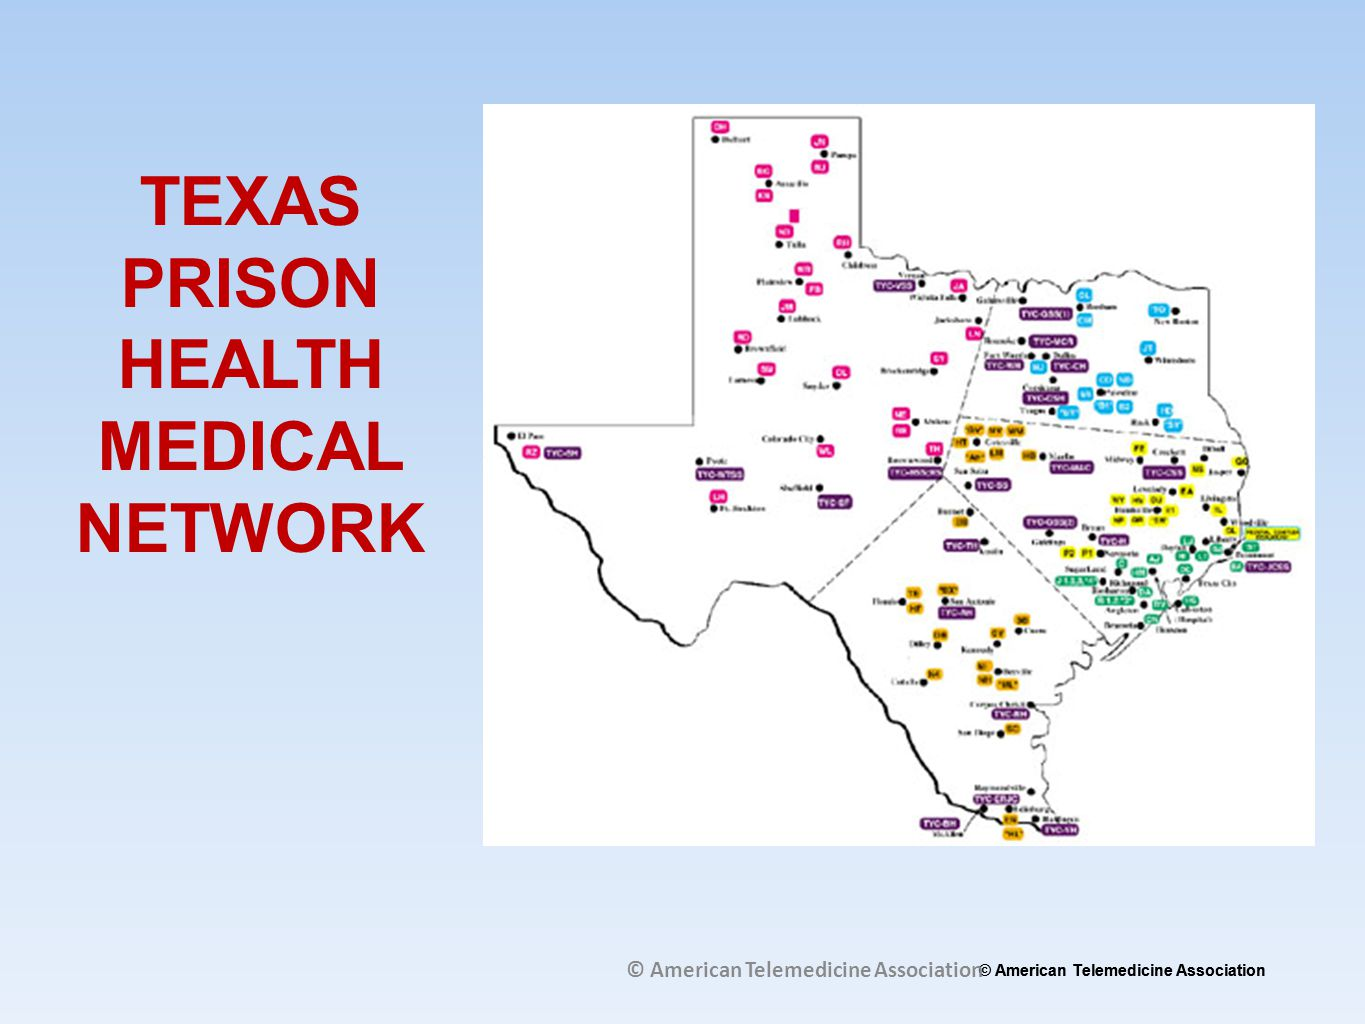 © American Telemedicine Association TEXAS PRISON HEALTH MEDICAL NETWORK © American Telemedicine Association